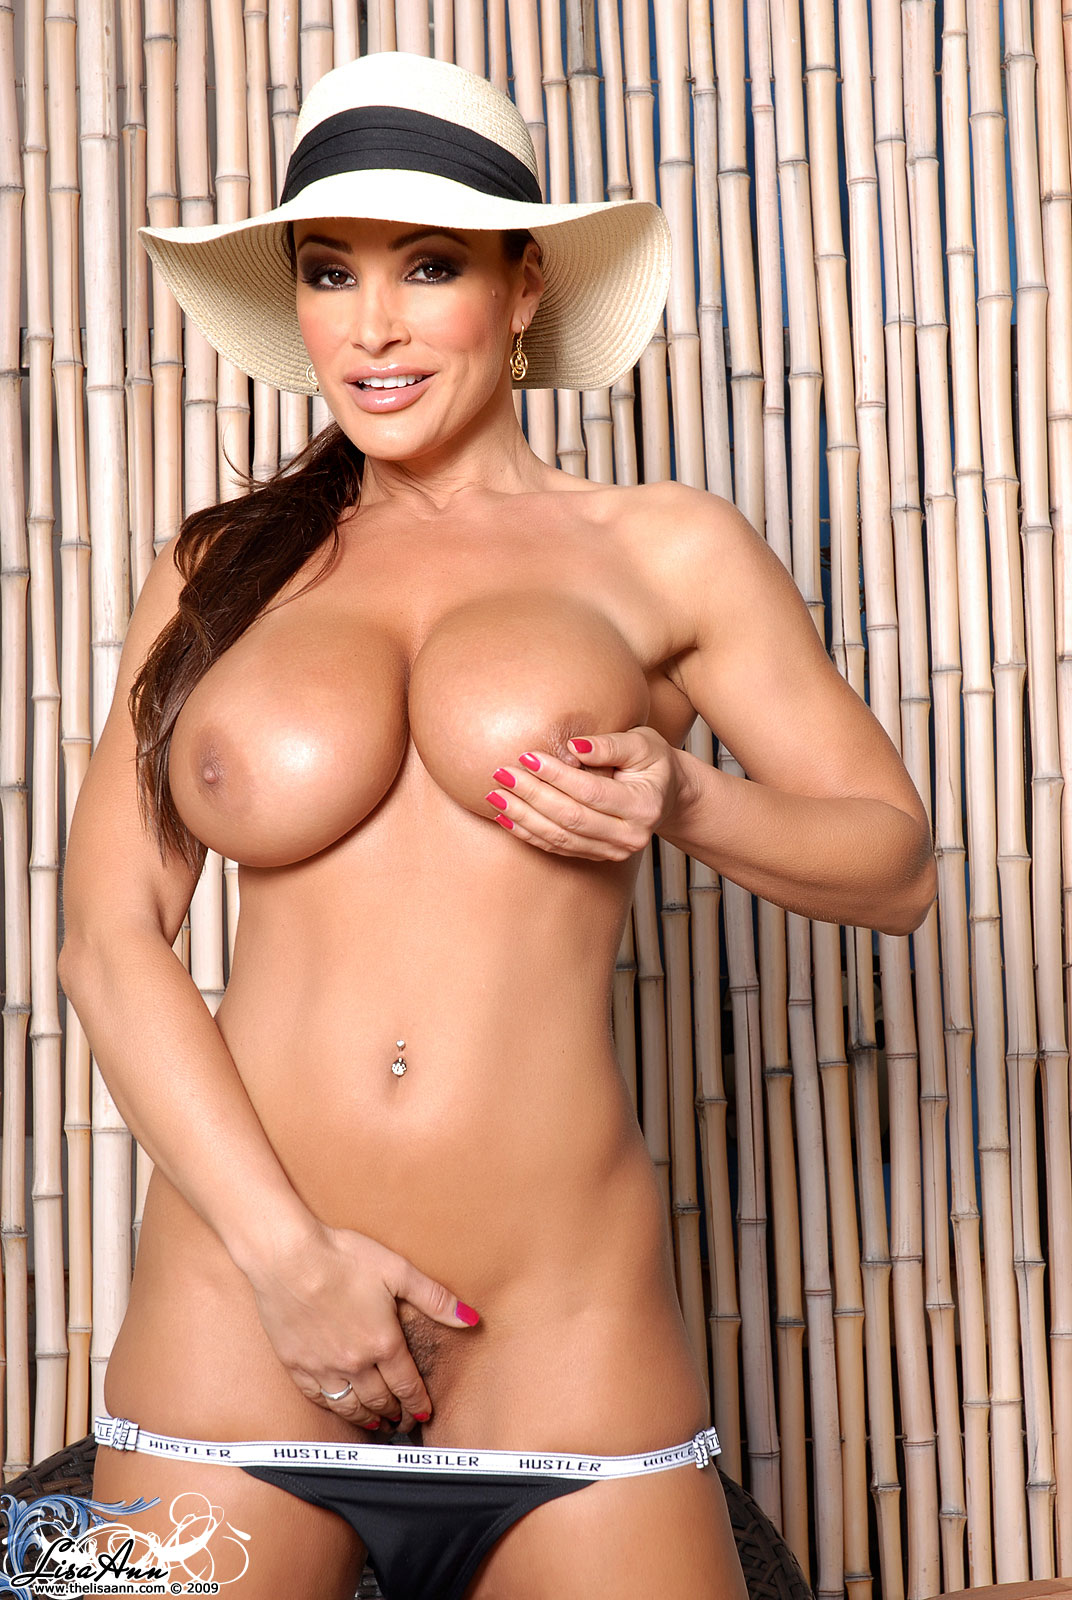 Congratulate, what Lisa ann walker naked nude were